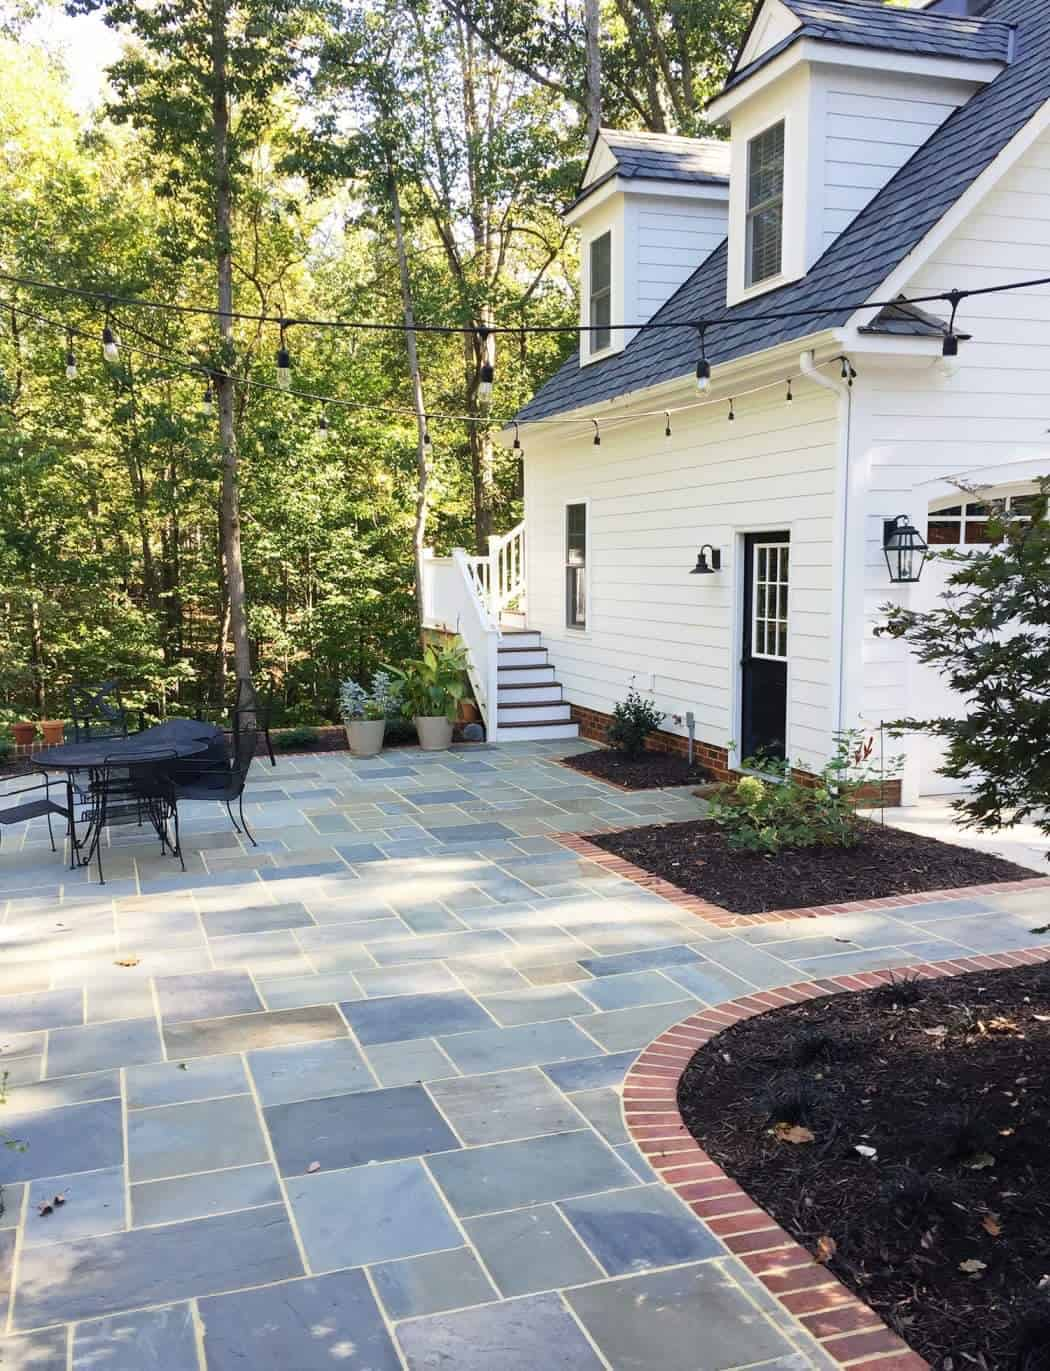 Bluestone pavers used in hardscaping.